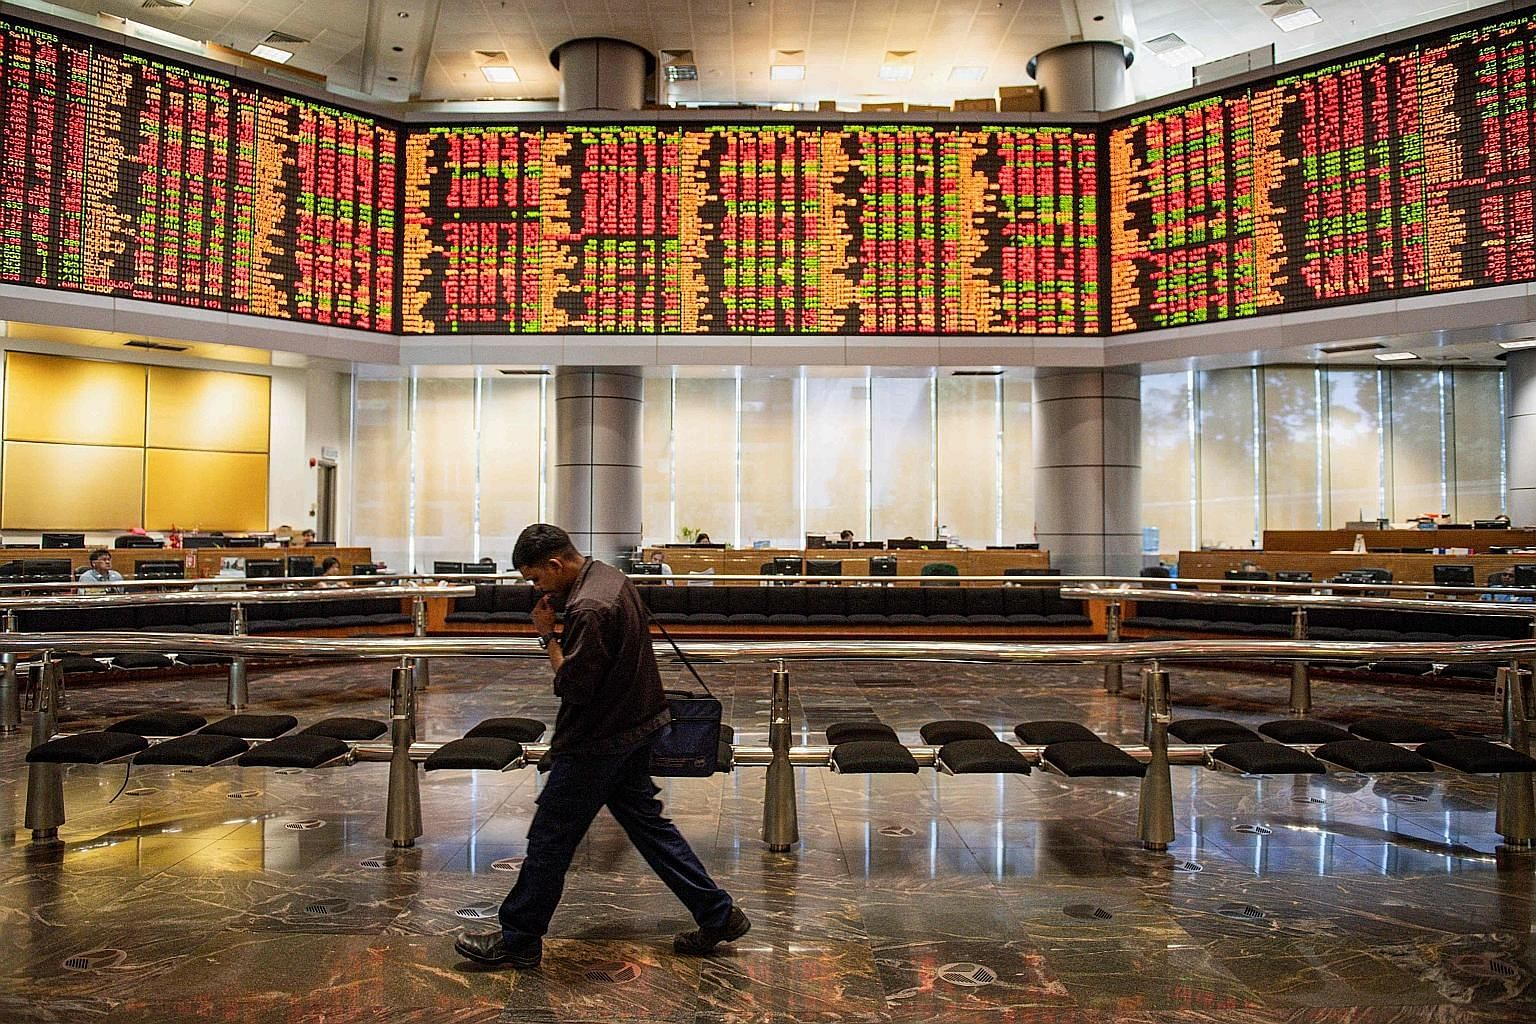 Electronic boards showing stock movements in Kuala Lumpur on Feb 24. Large corporate mergers and the award of contracts and licences are now in limbo following the change of government last week.